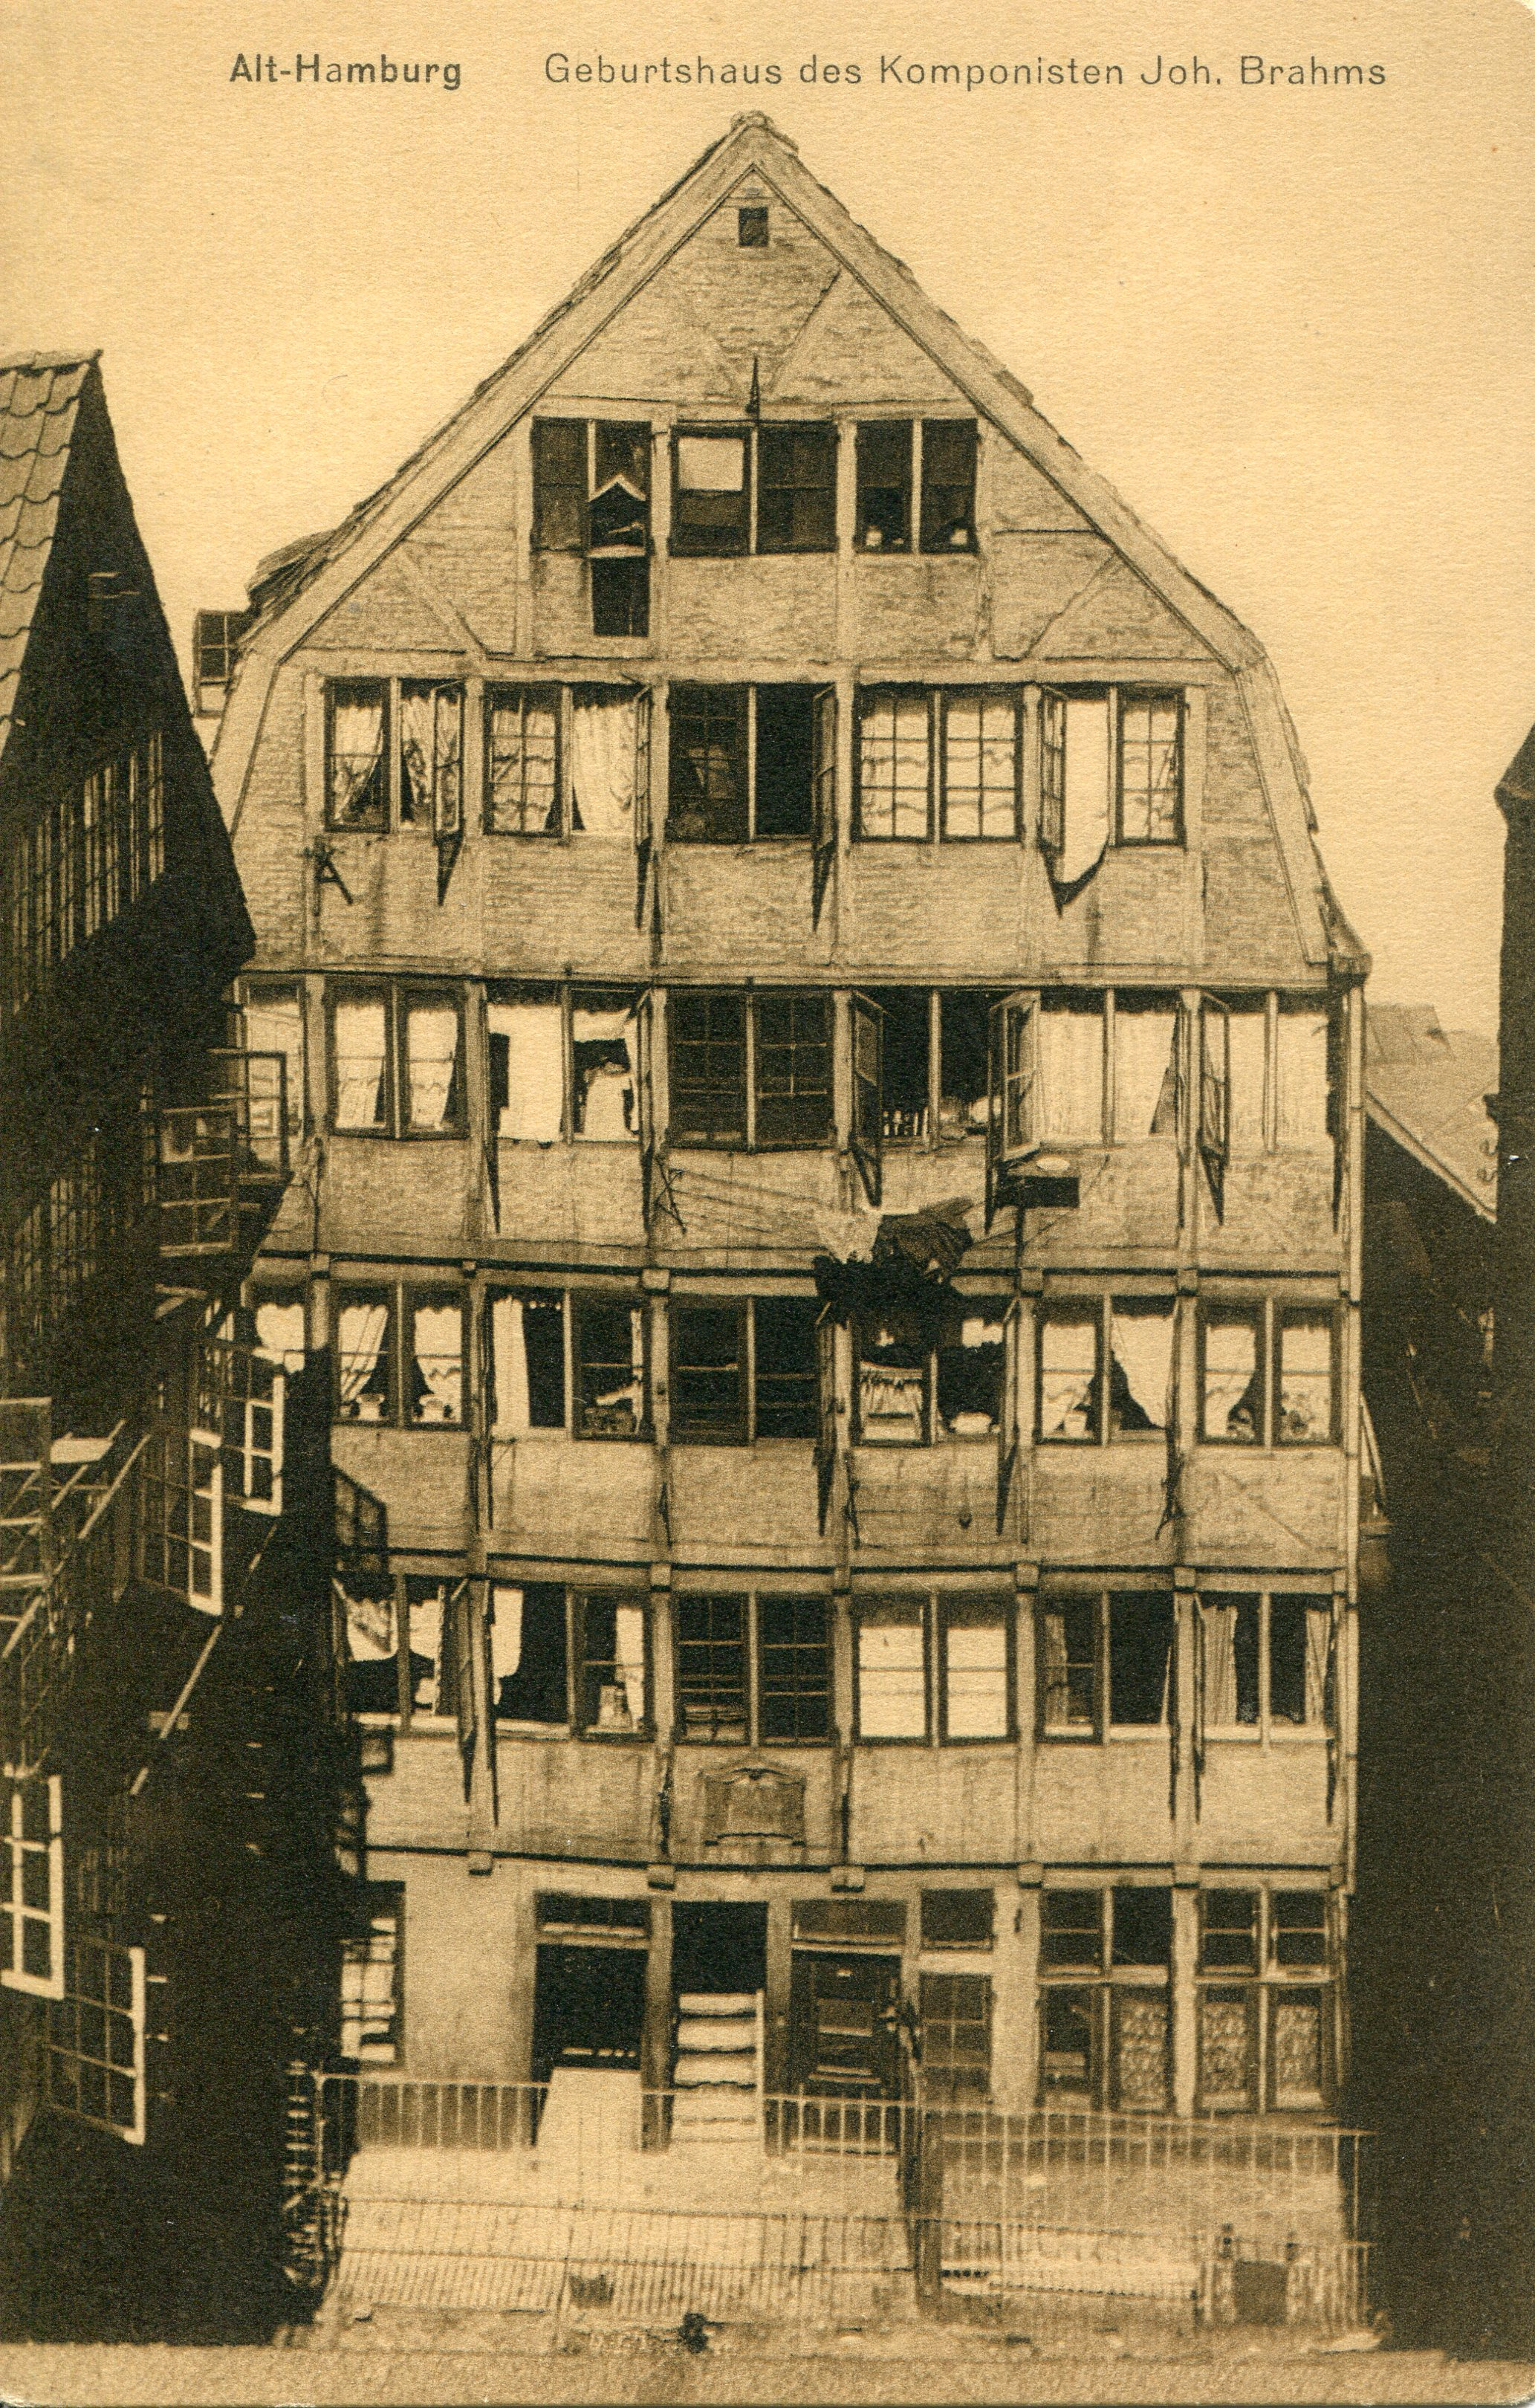 The birthplace of the composer Johannes Brahms (1833-1897), Hamburg